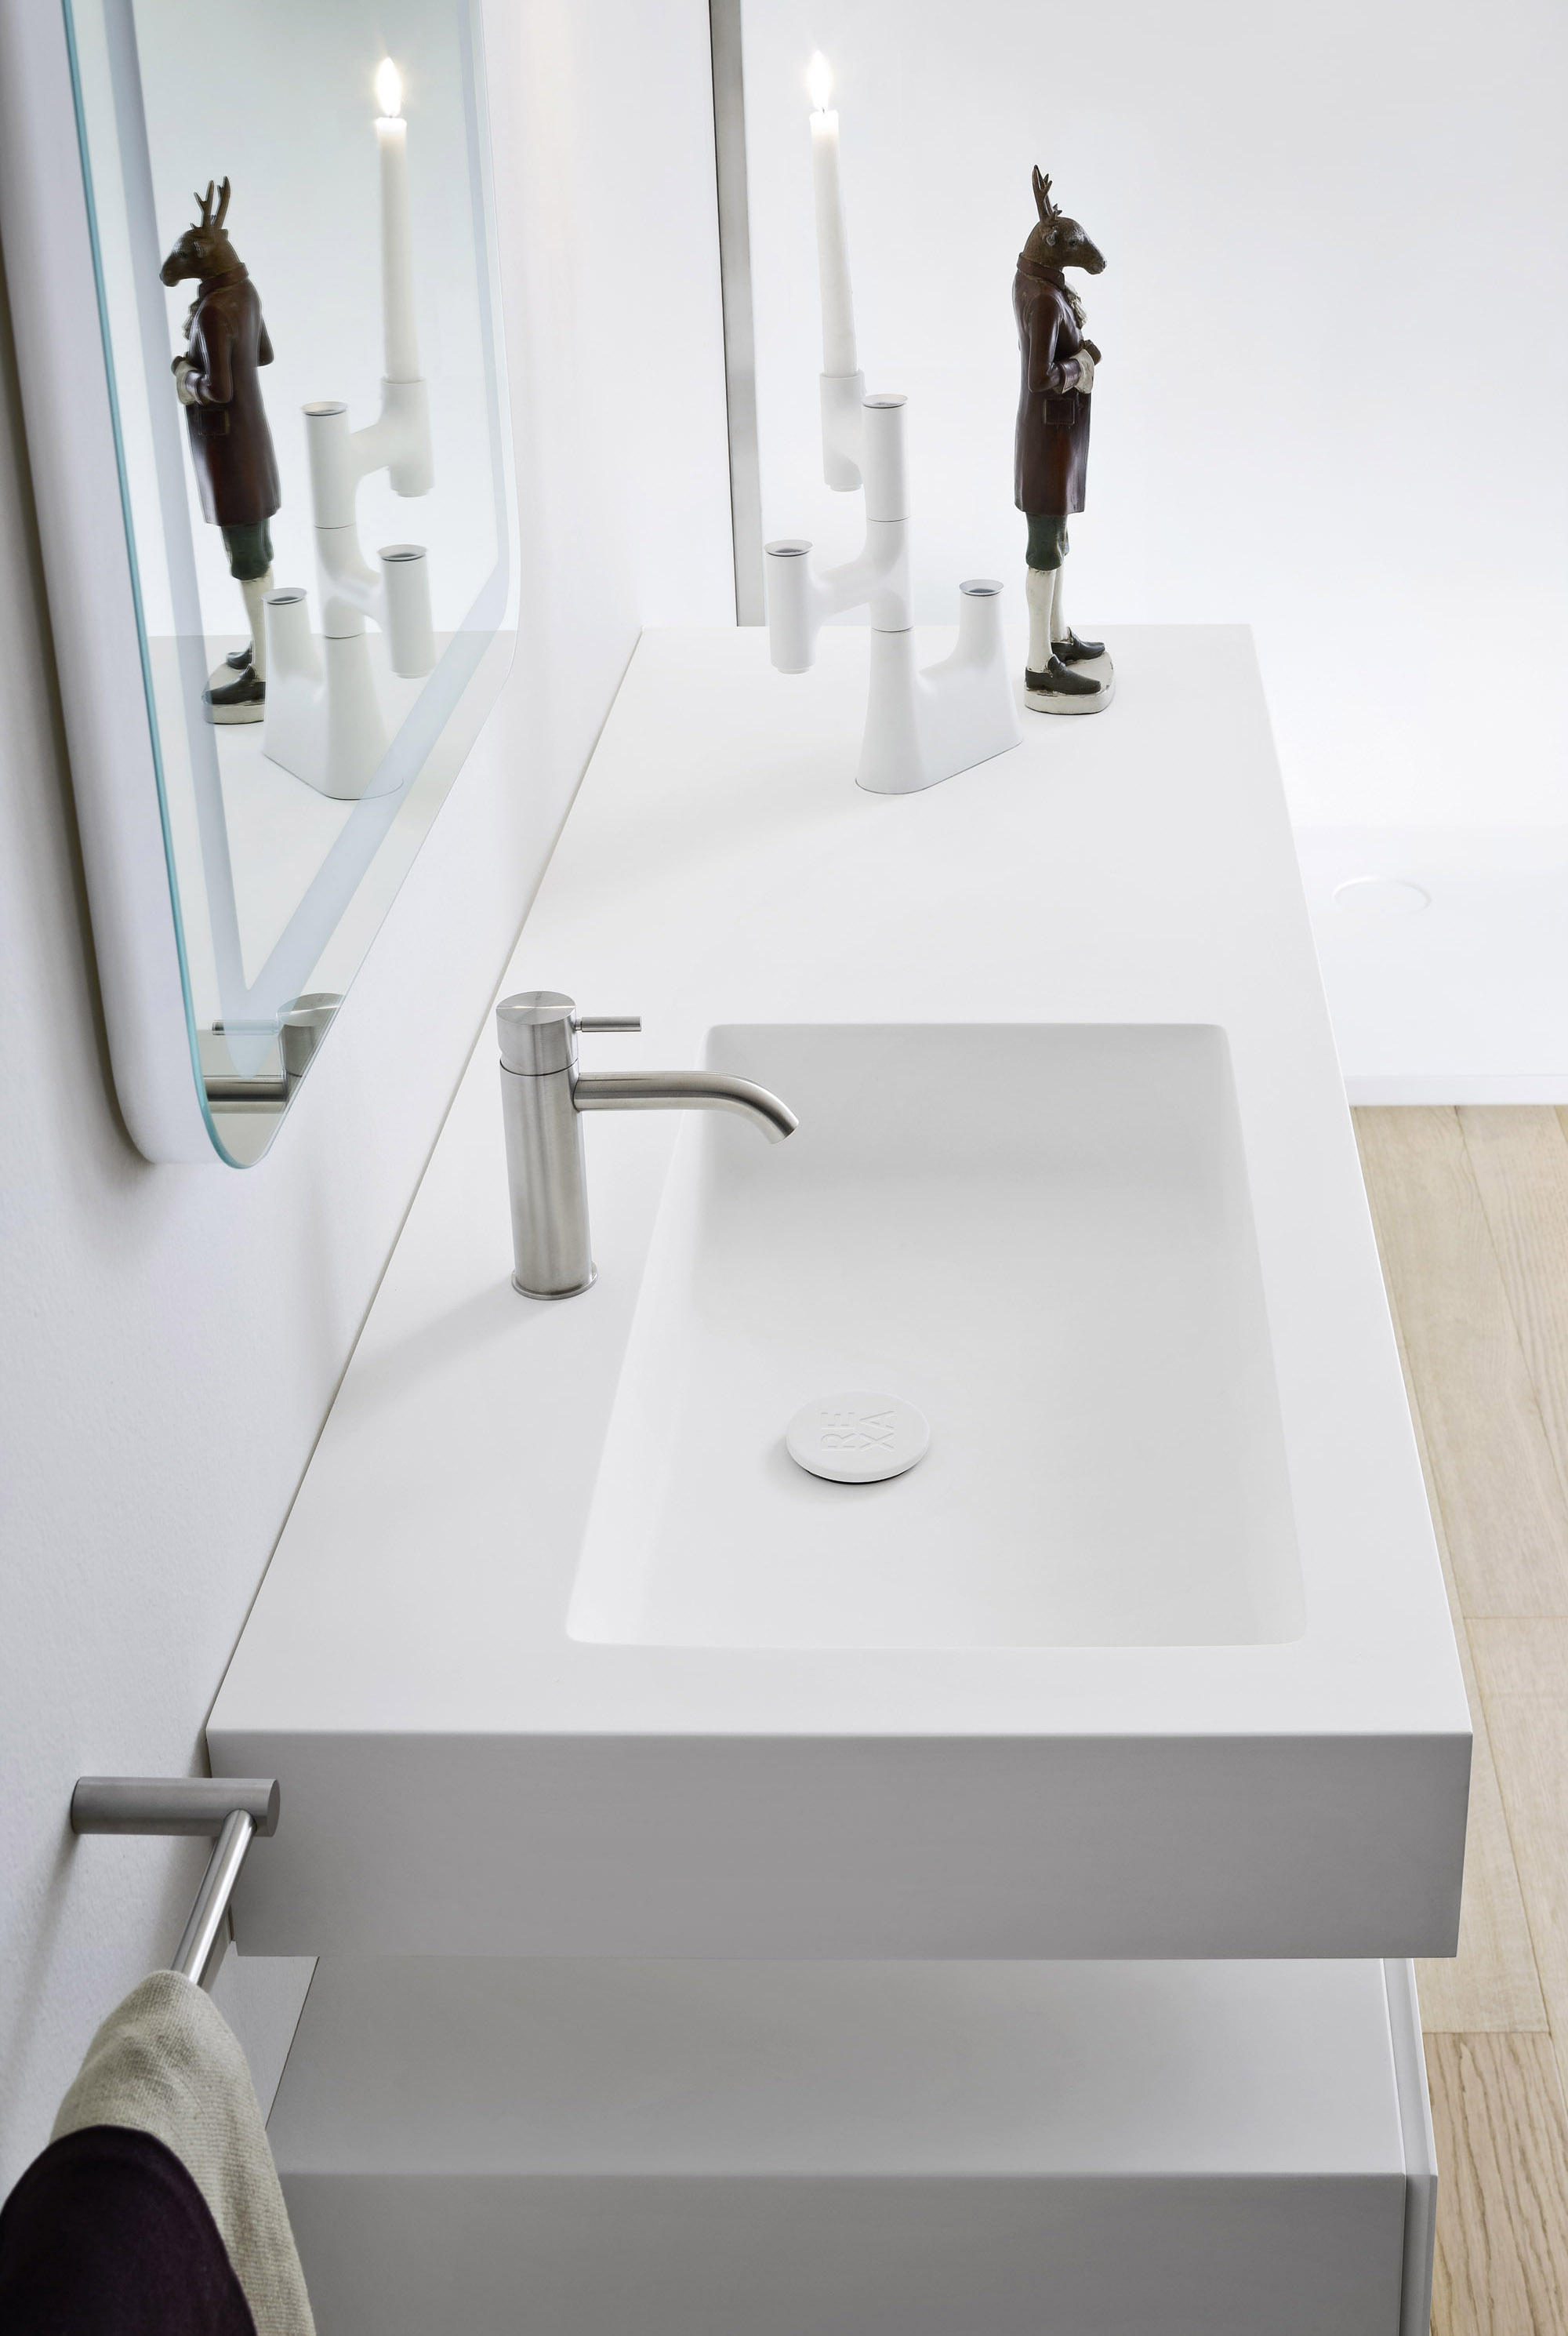 Unico plan avec vasque integr meubles sous lavabo de for Plan vasque design